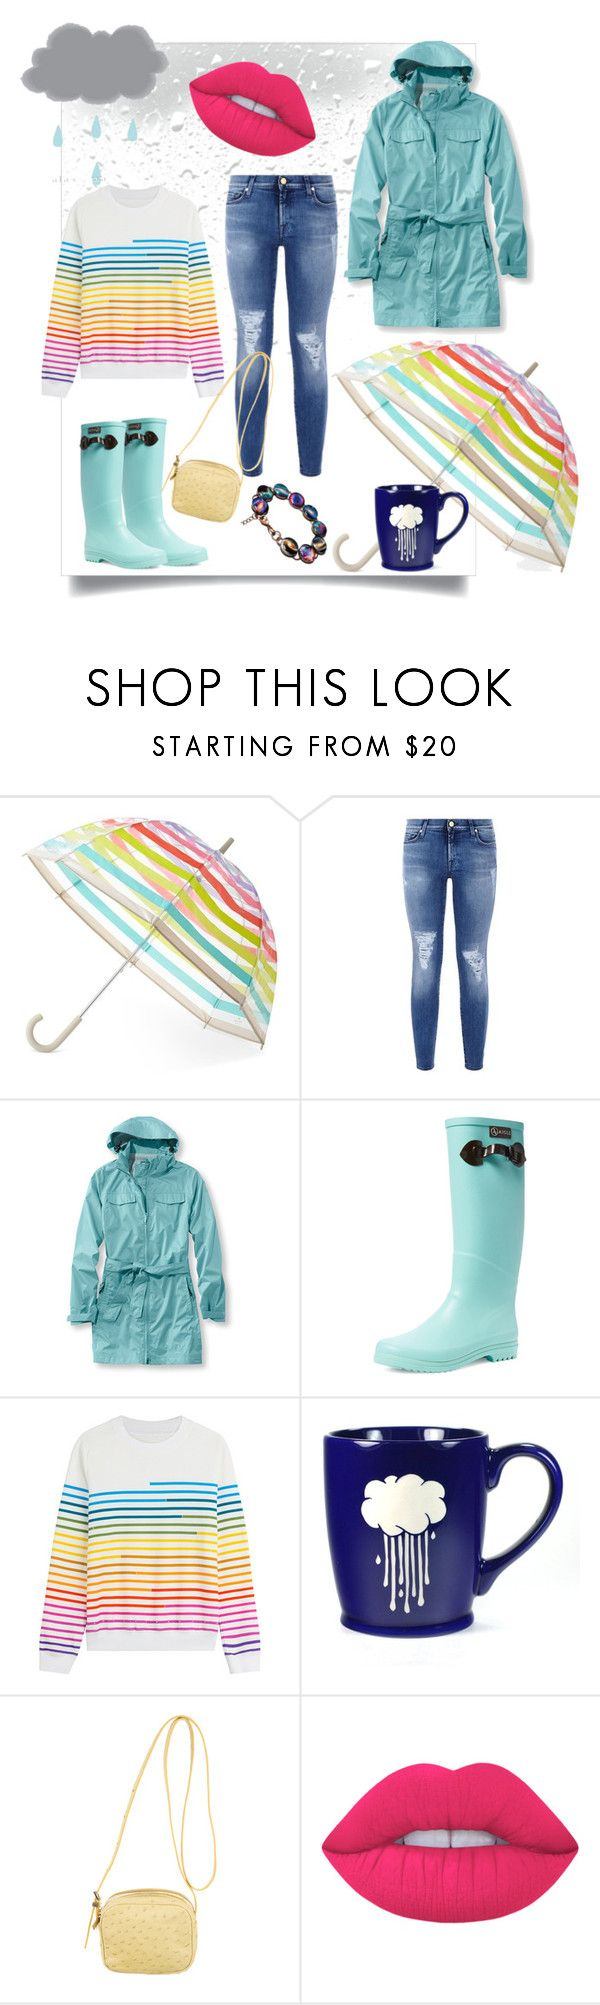 """""""Rain🌧"""" by mahshid-afshar ❤ liked on Polyvore featuring Kate Spade, 7 For All Mankind, L.L.Bean, Aigle, Mary Katrantzou, The Row and Lime Crime"""